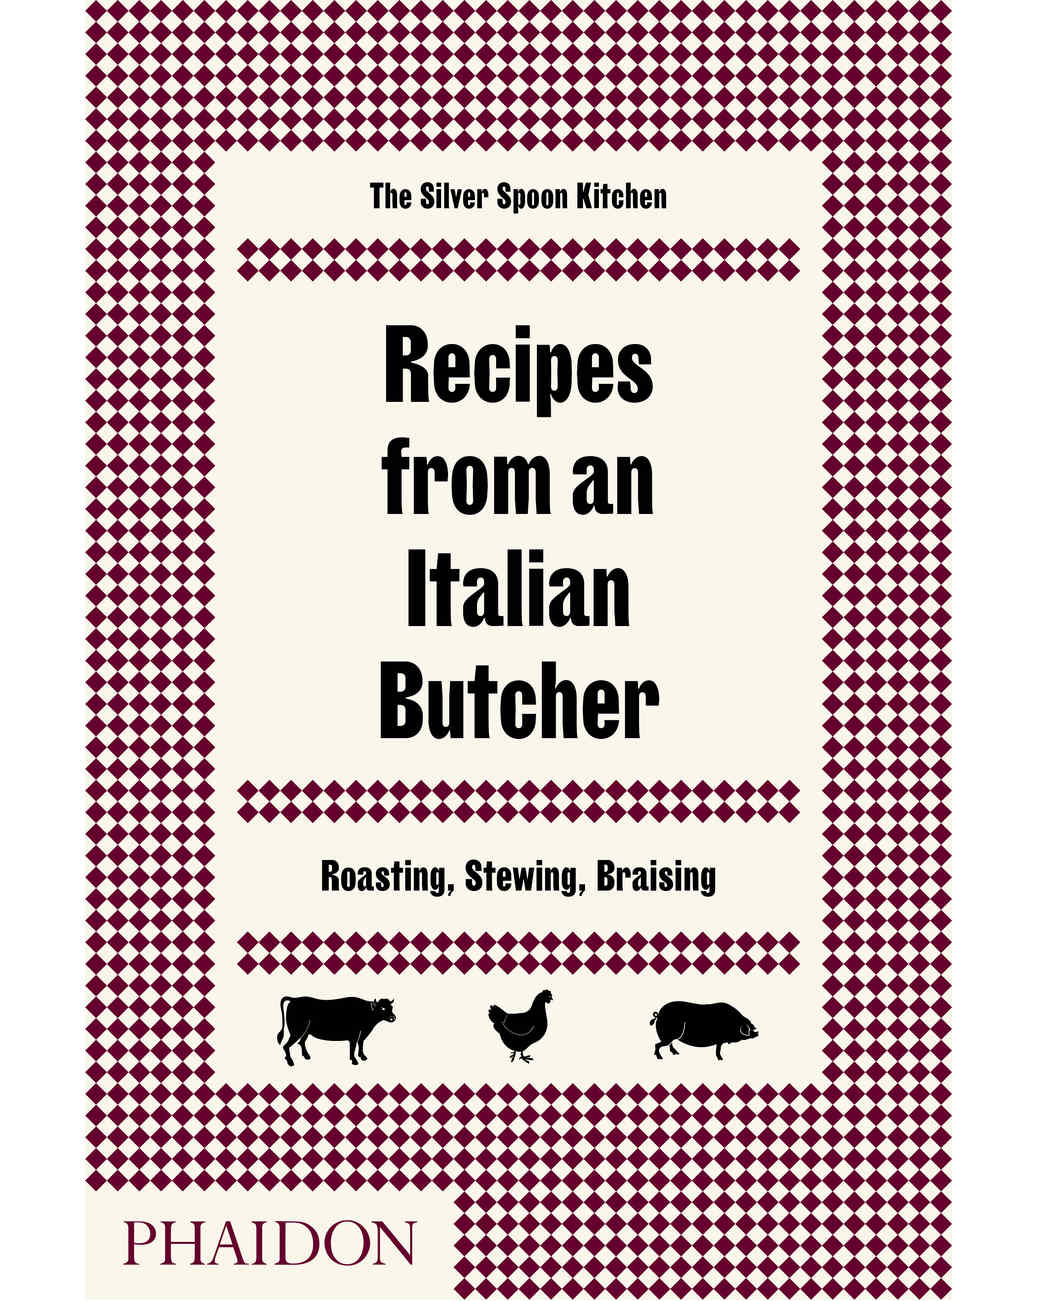 recipes from an italian butcher cookbook